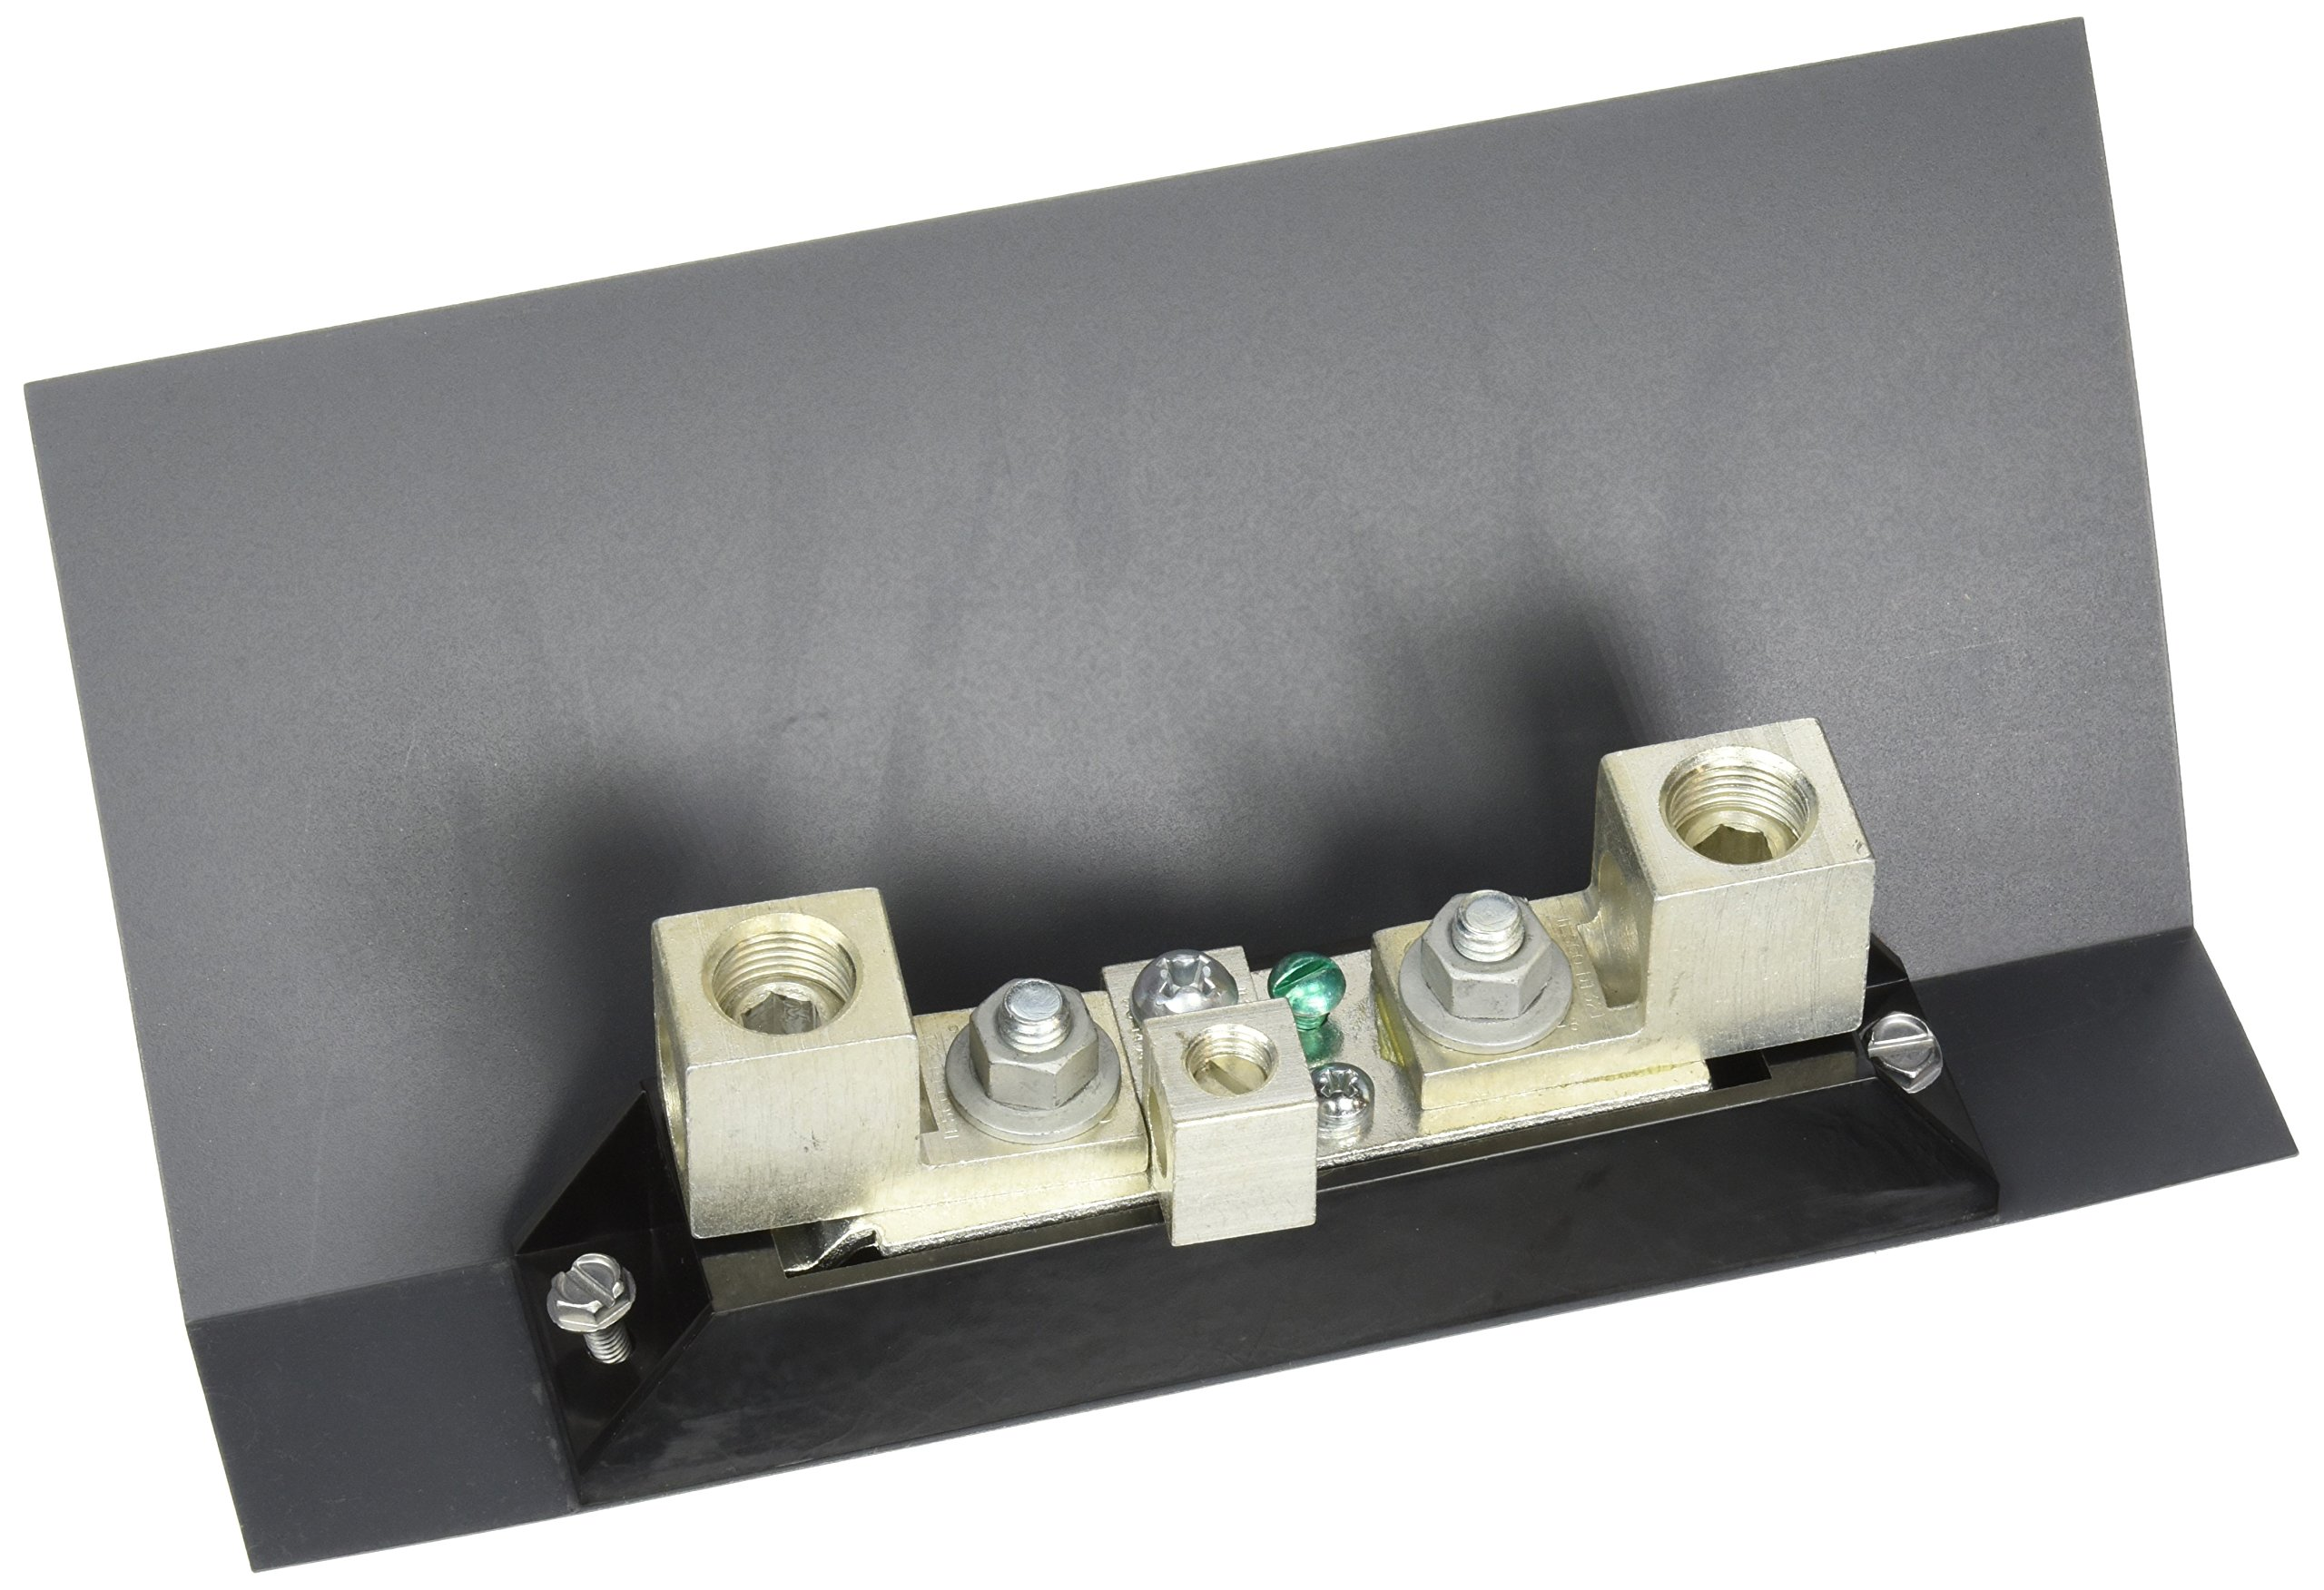 Siemens HN64 200 Amp Safety Switch Units Neutral Kit by Siemens (Image #1)